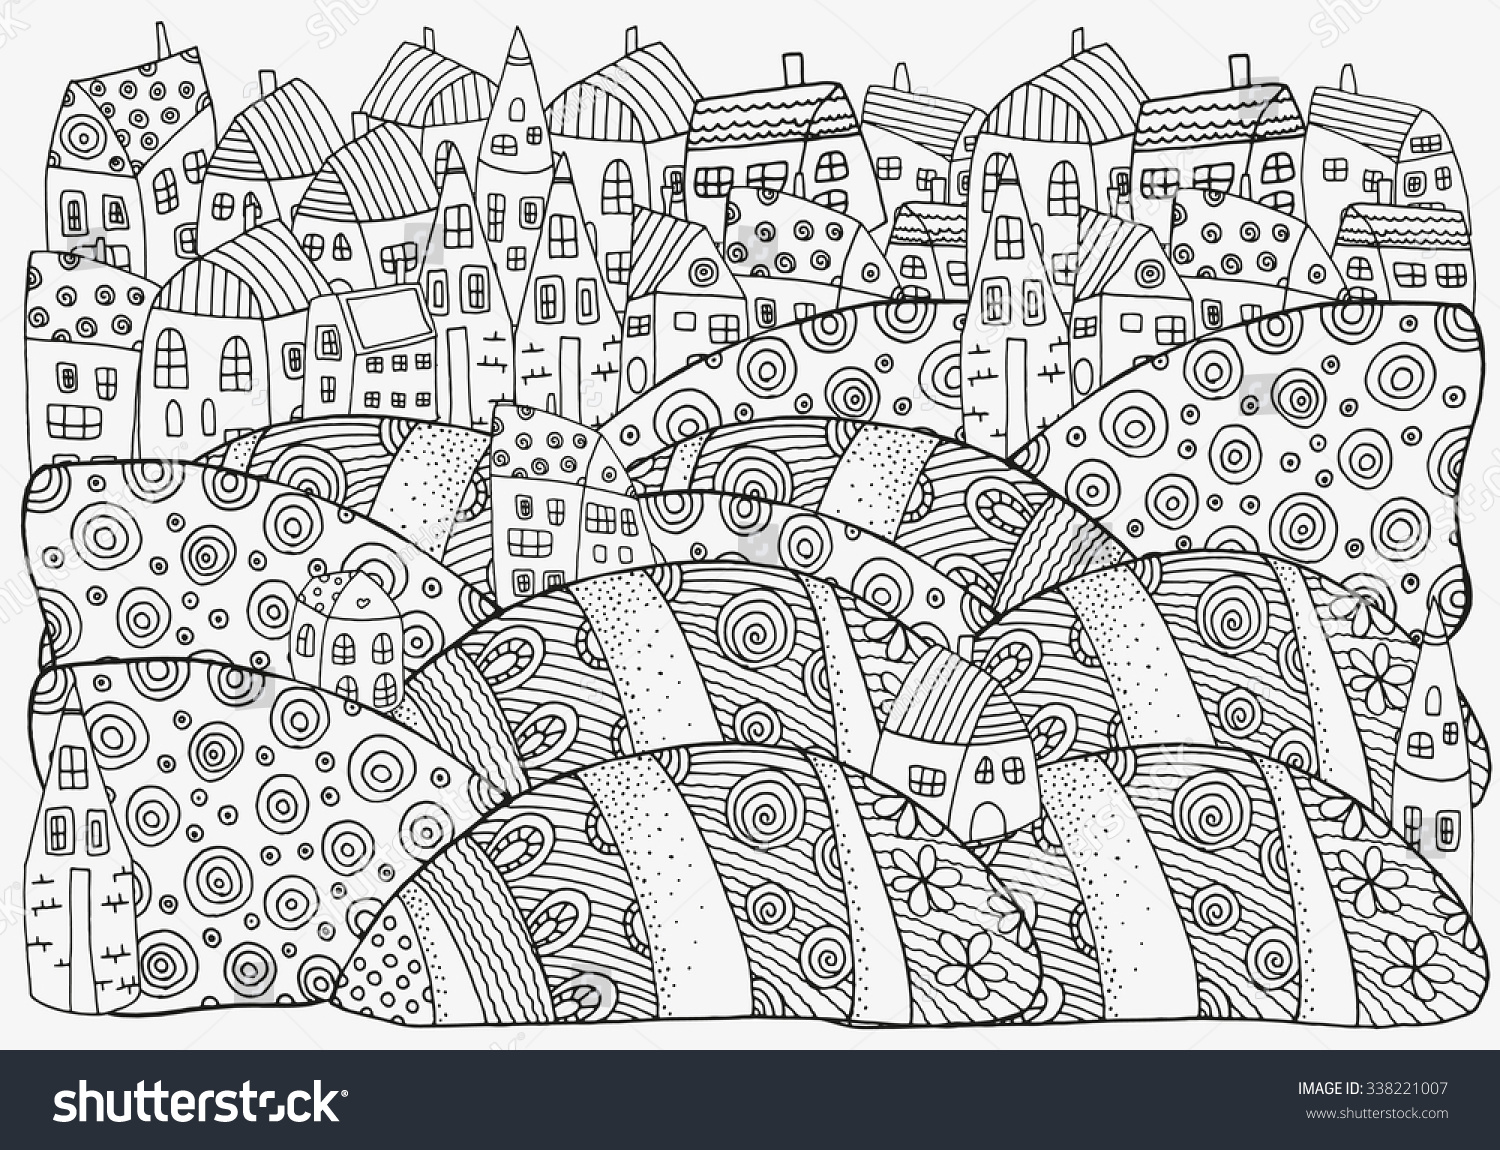 Th the magical city colouring in book - Pattern For Coloring Book With Artistically Houses A4 Size Magic City Fields